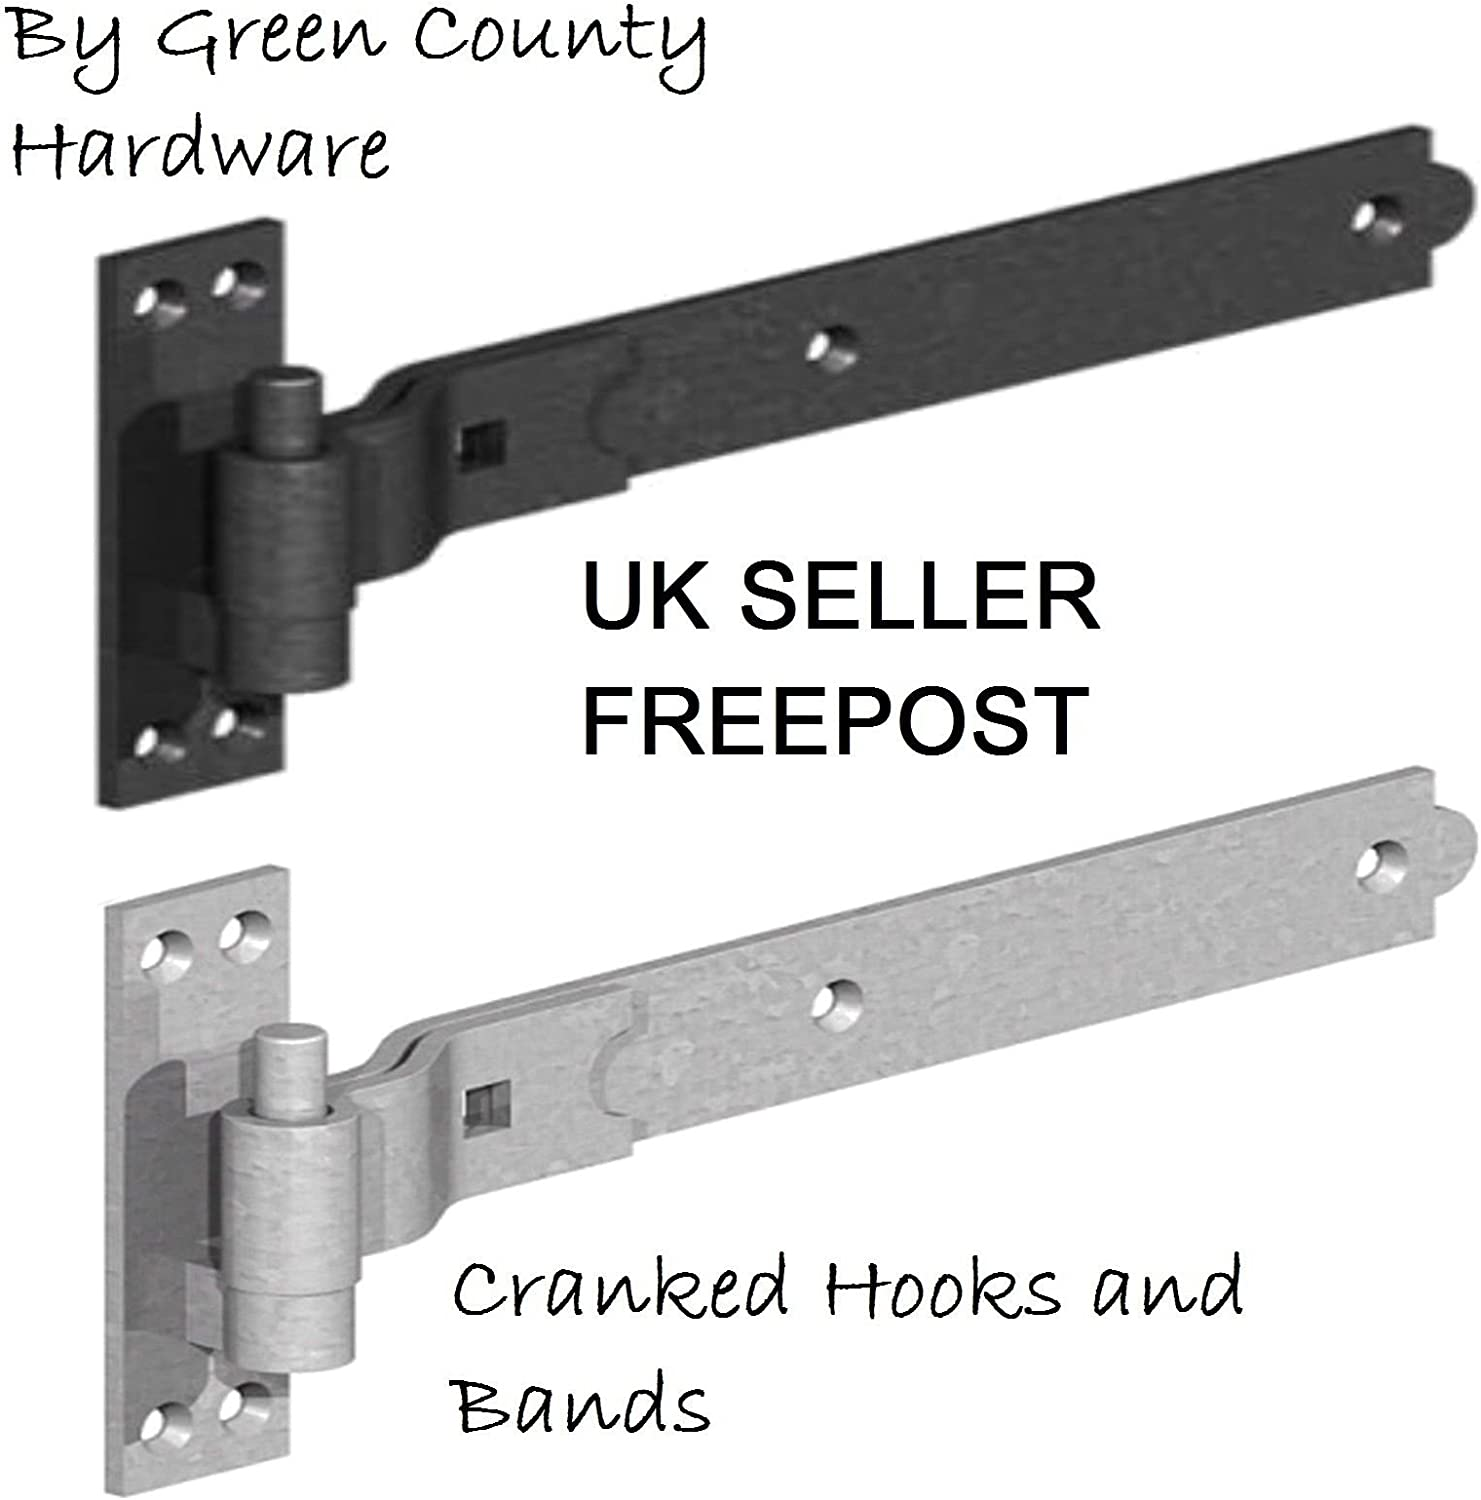 Contemporary Style Lamps Heavy Duty Hook and Band Gate Stable Shed Door Straight Hinges 300mm // 12 Black